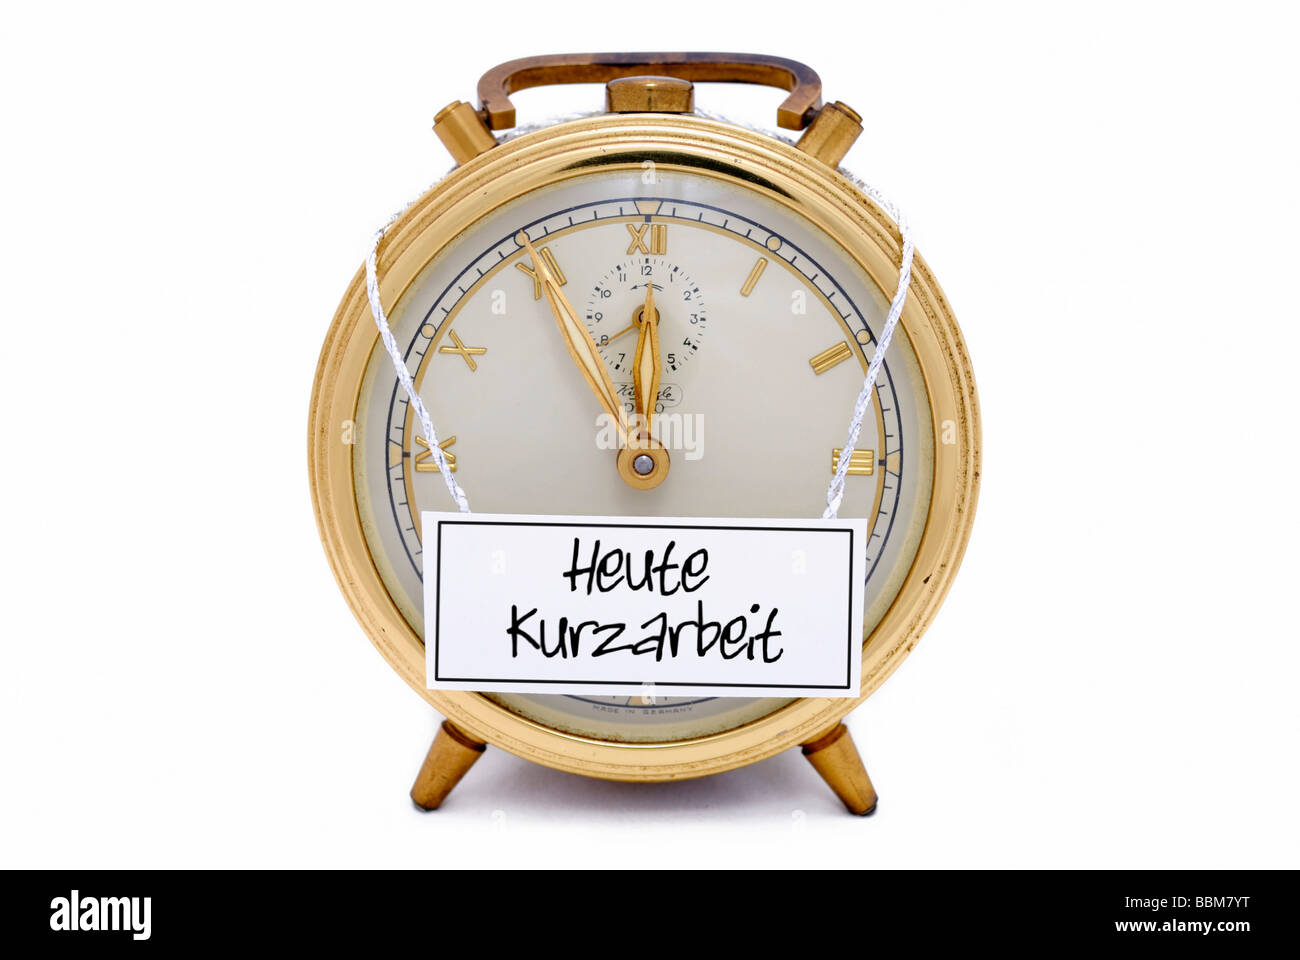 Alarm clock, 5 to 12, 'Heute Kurzarbeit', German for: today short-time work, written on a sign - Stock Image